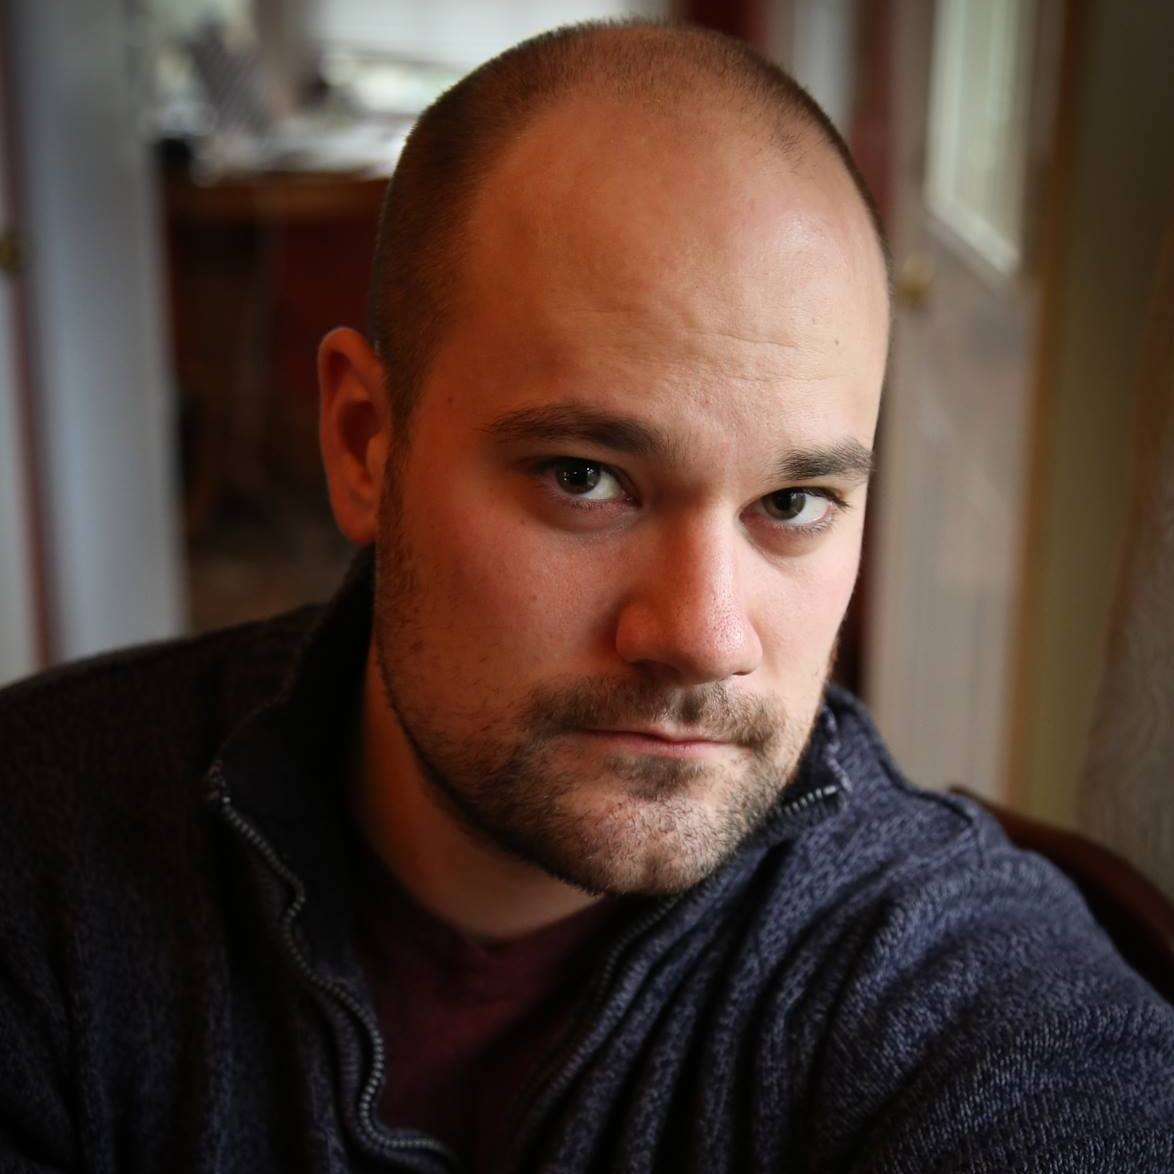 Steve Patrick Ercolan i is a freelance journalist whose work has appeared in The Atlantic, Al Jazeera English, and NPR.